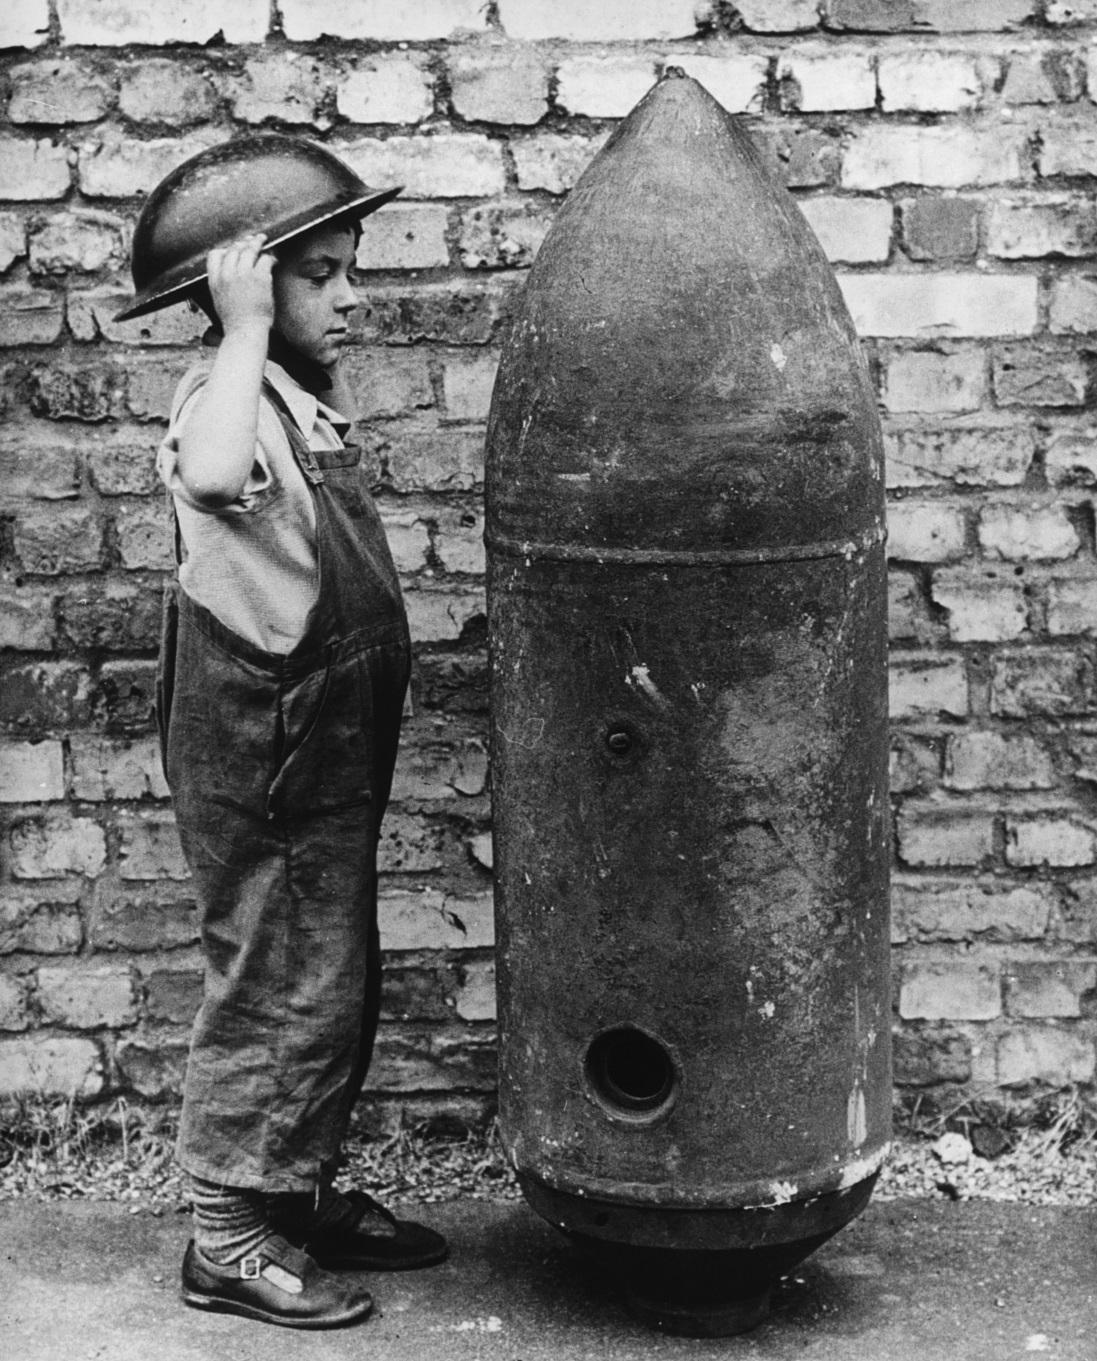 Unexploded bomb that fell on the Gaumont in Wood Green in 1940